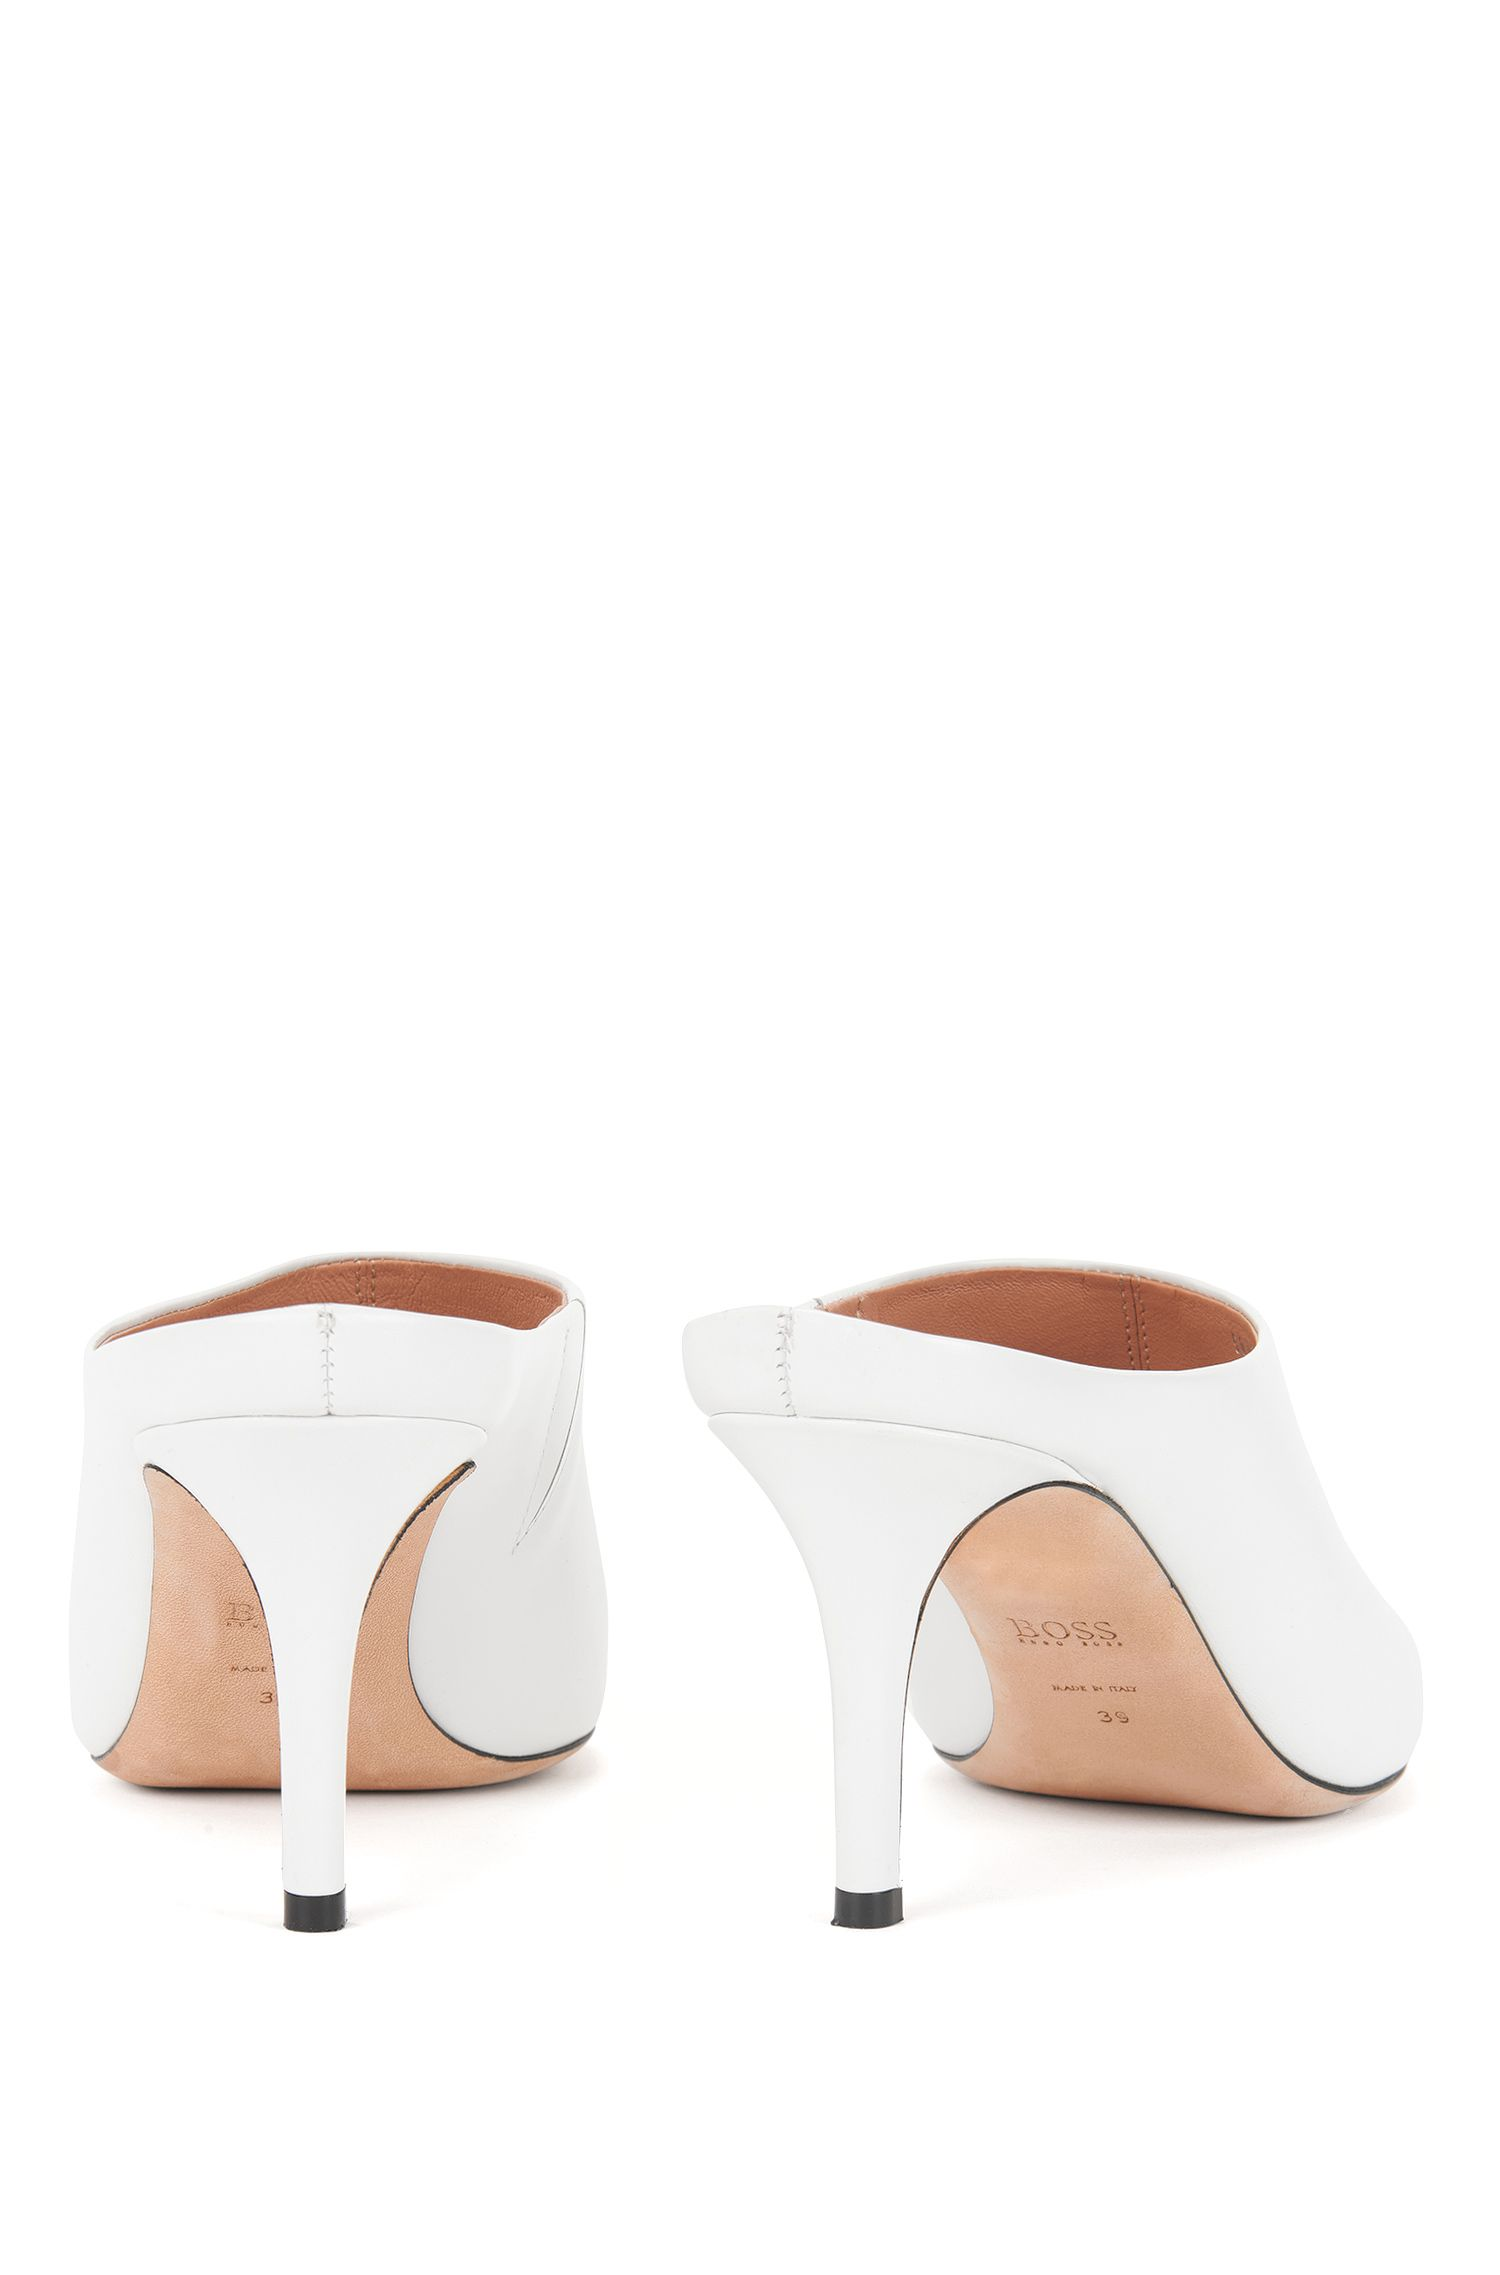 Pointed-toe mules in Italian leather